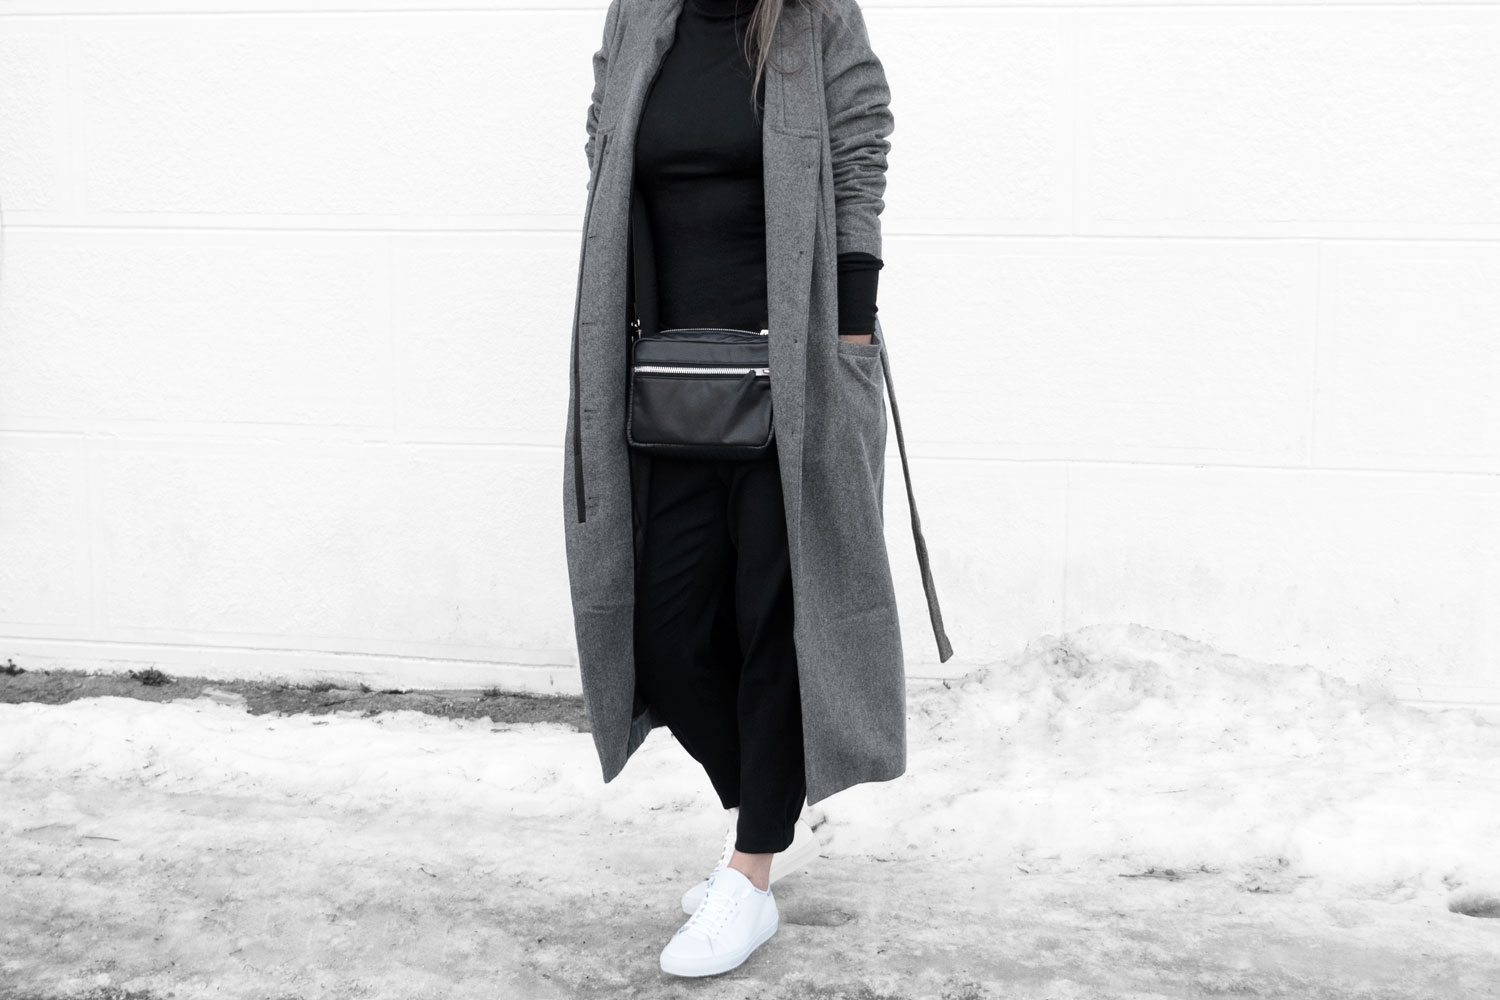 Lines-Manner-Simplicity-Neutral-Palette-Functional-Versatile-Timeless-Grey-Winter_Coat-Details-Essentials-Minimal-Basics-1bis